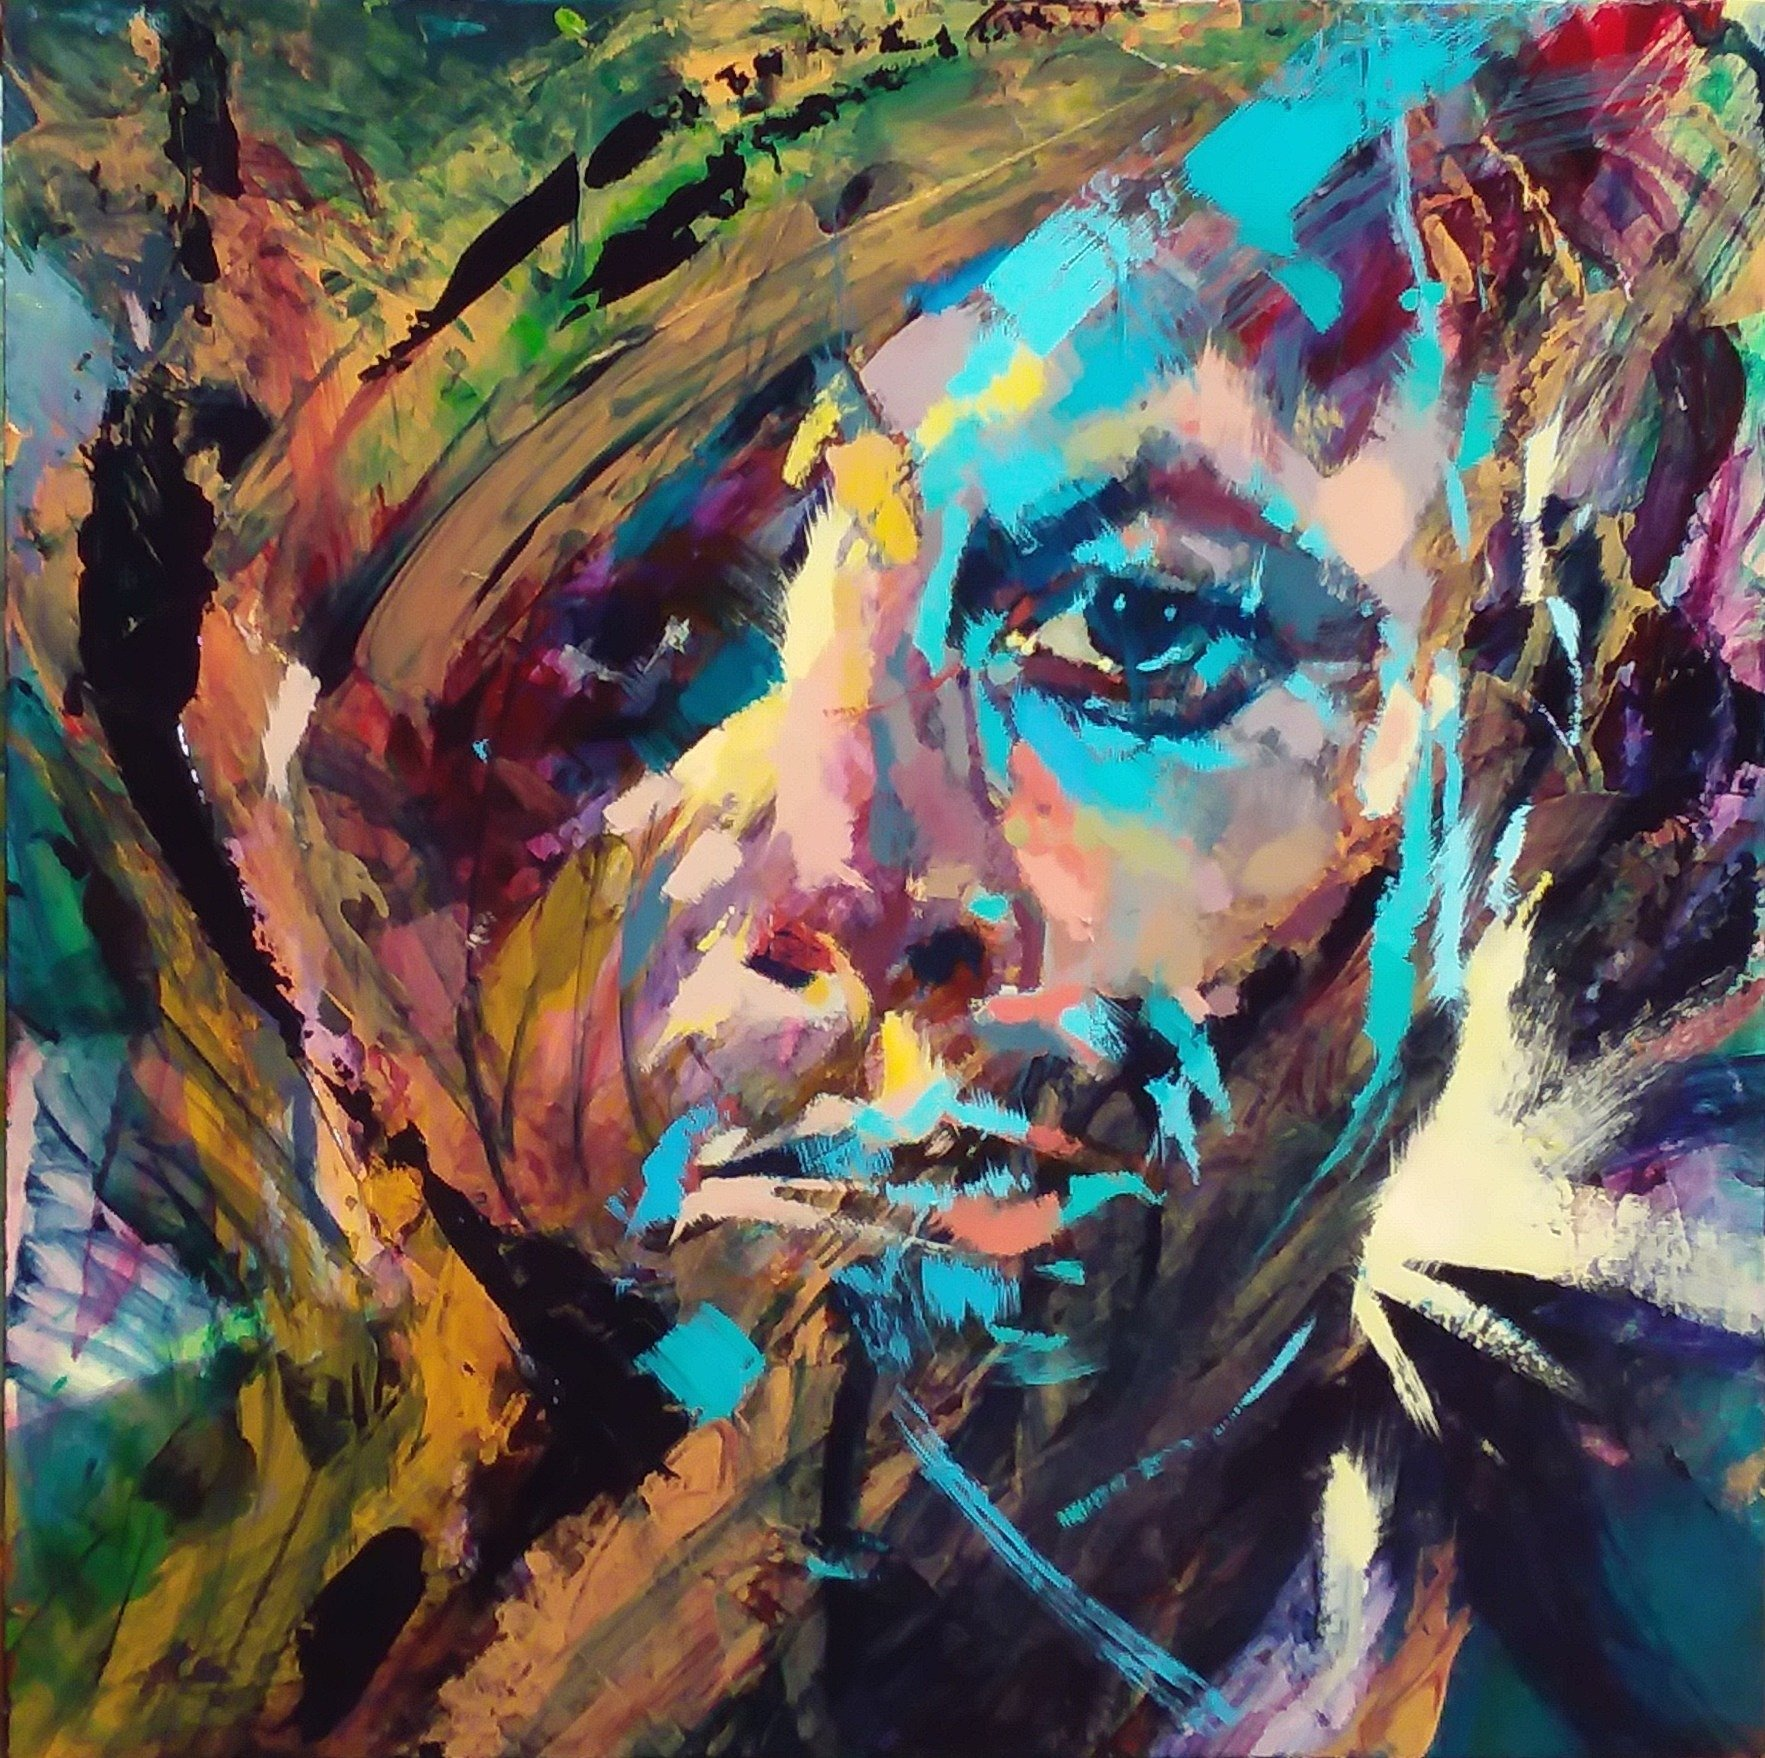 JFK by Henryk Ptasiewicz Acrylic on cradled panel 24x24